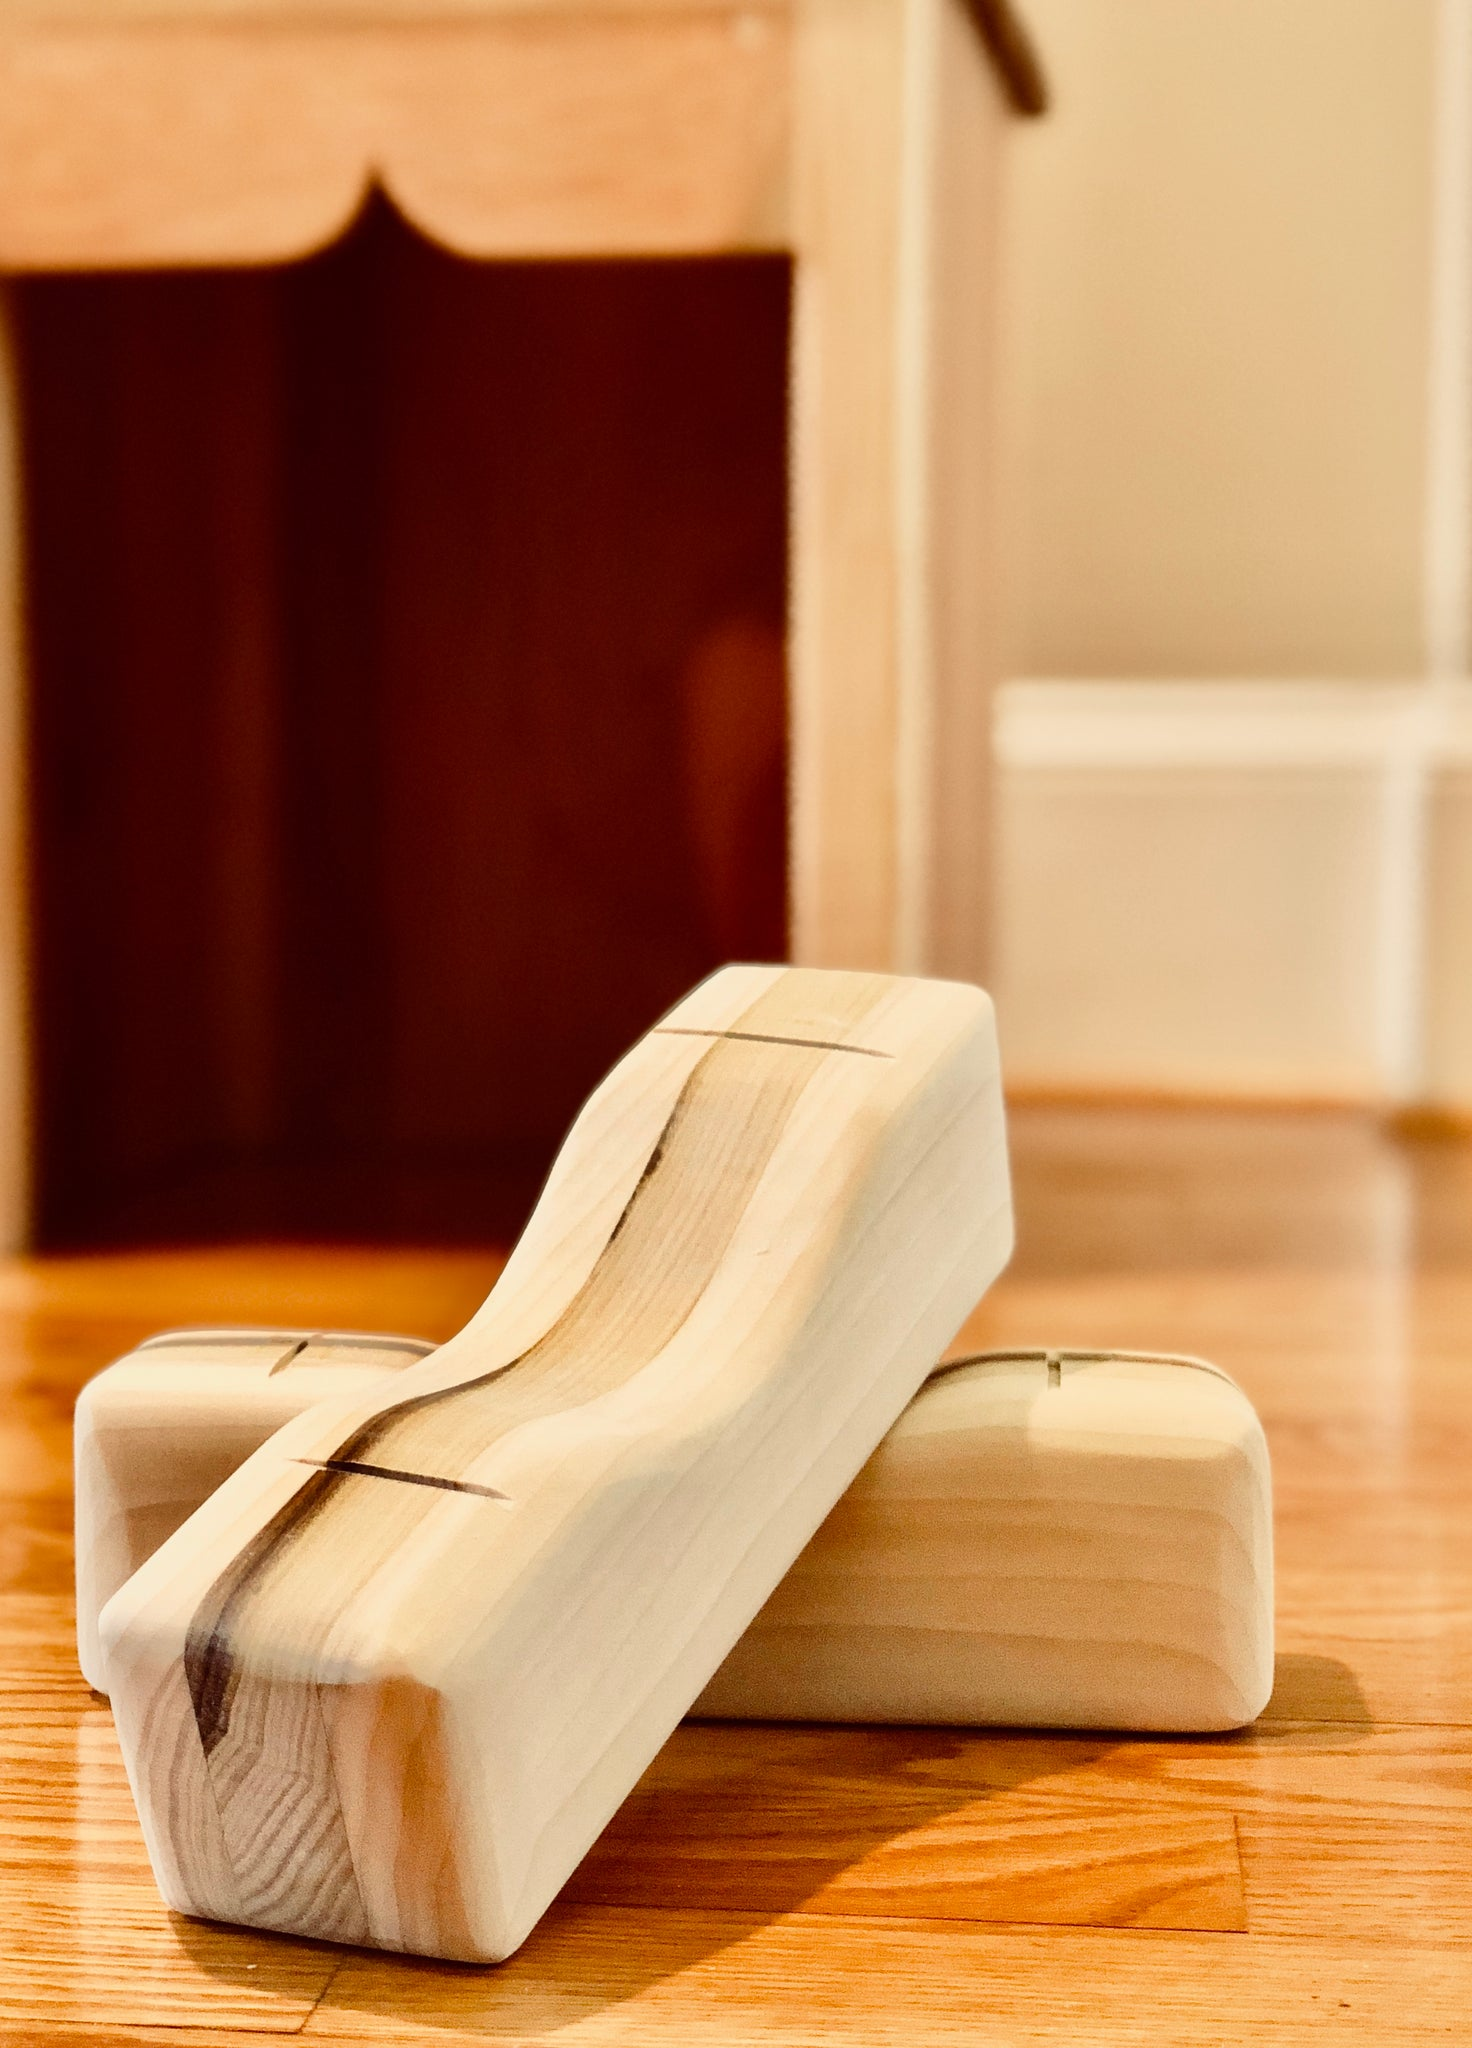 Awesome Yoni Steam Stool Wooden Footrests Purevag Ocoug Best Dining Table And Chair Ideas Images Ocougorg